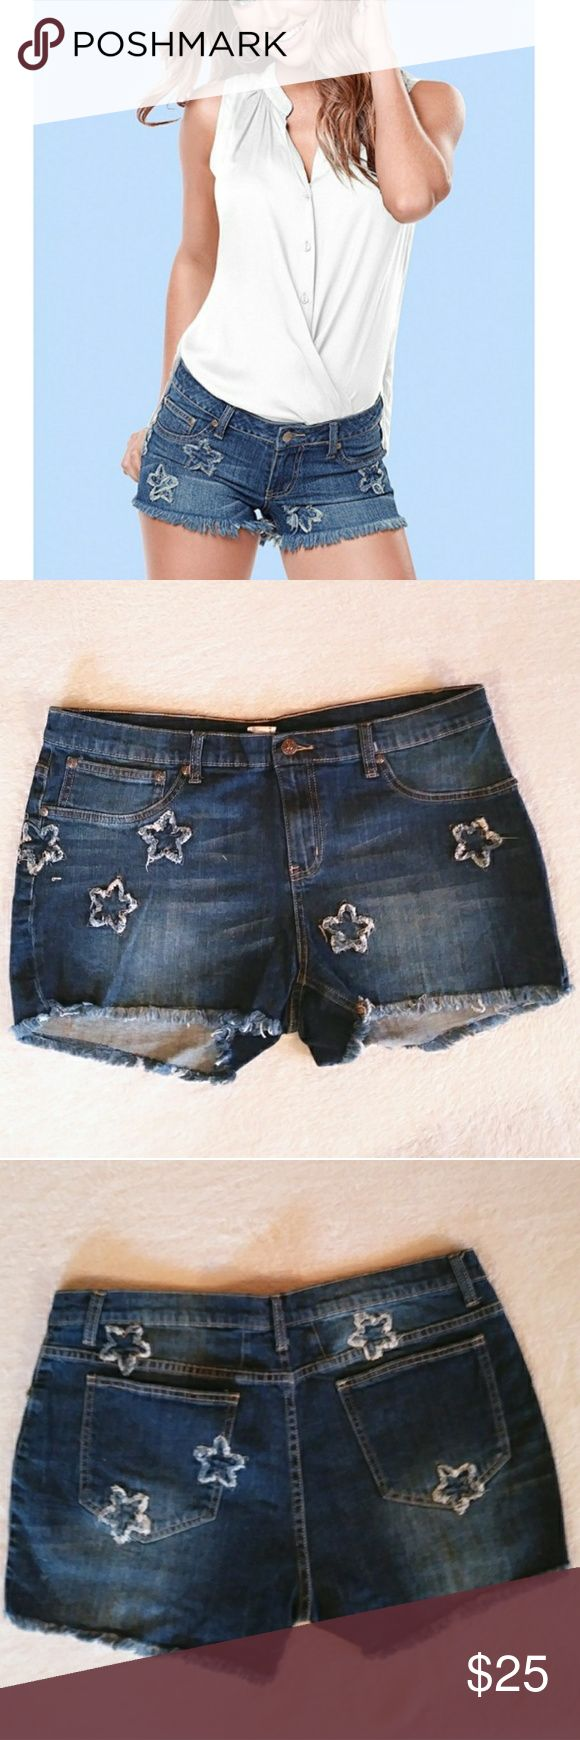 """NWOT Venus Star Detail Jean Shorts Venus Star Detail Jean Shorts size - 16 in medium wash. New in package, never worn. These jean shorts have patchwork-like detail at front and back as well as frayed edges. Button tab and zipper closure, 5 pocket styling, and an approximate 3"""" inseam. Very cute! VENUS Shorts"""